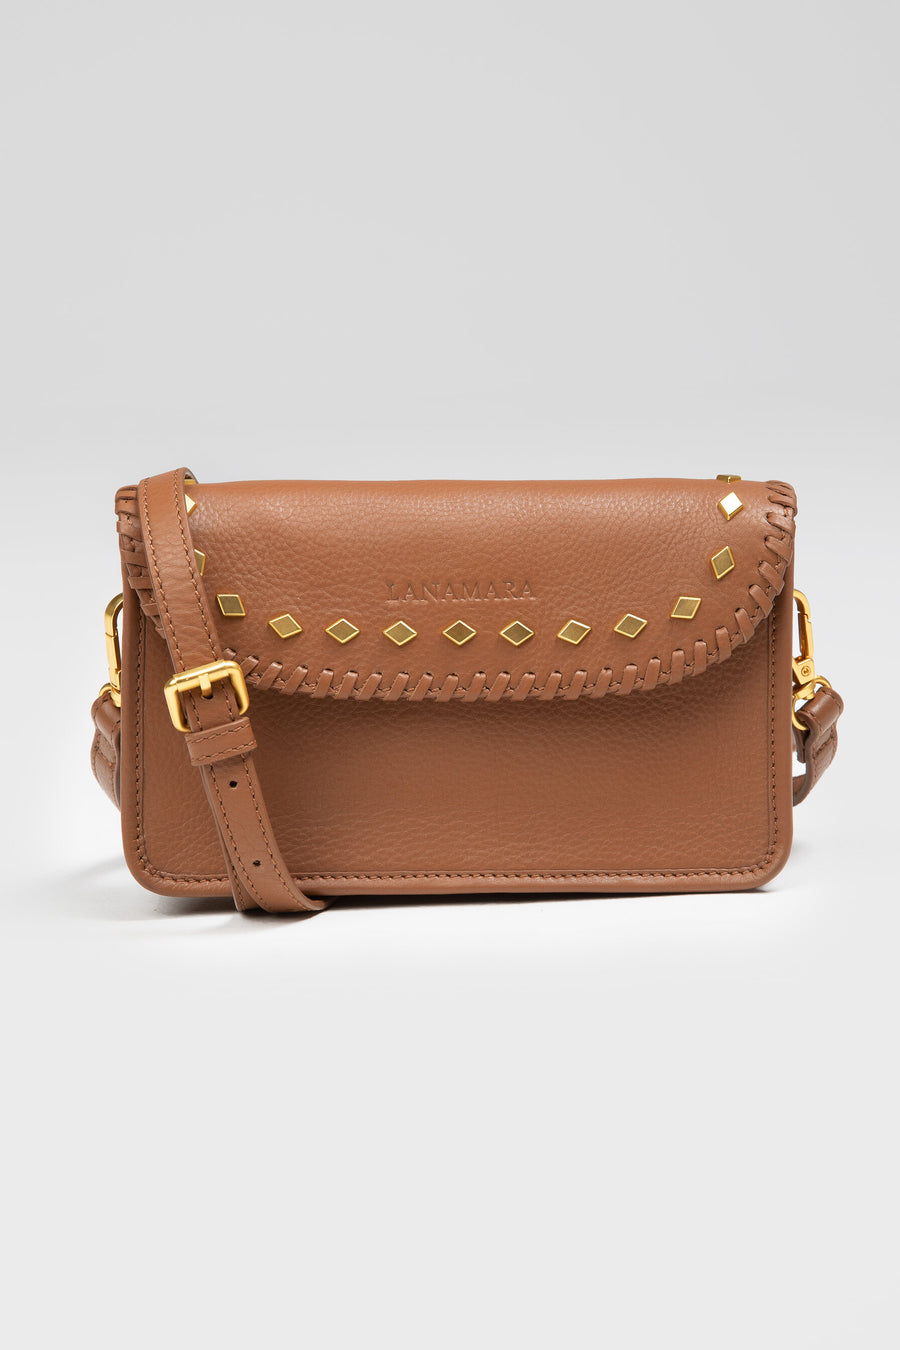 Lanamara - Elodie Brown Leather Belt Bag with Studs - Small